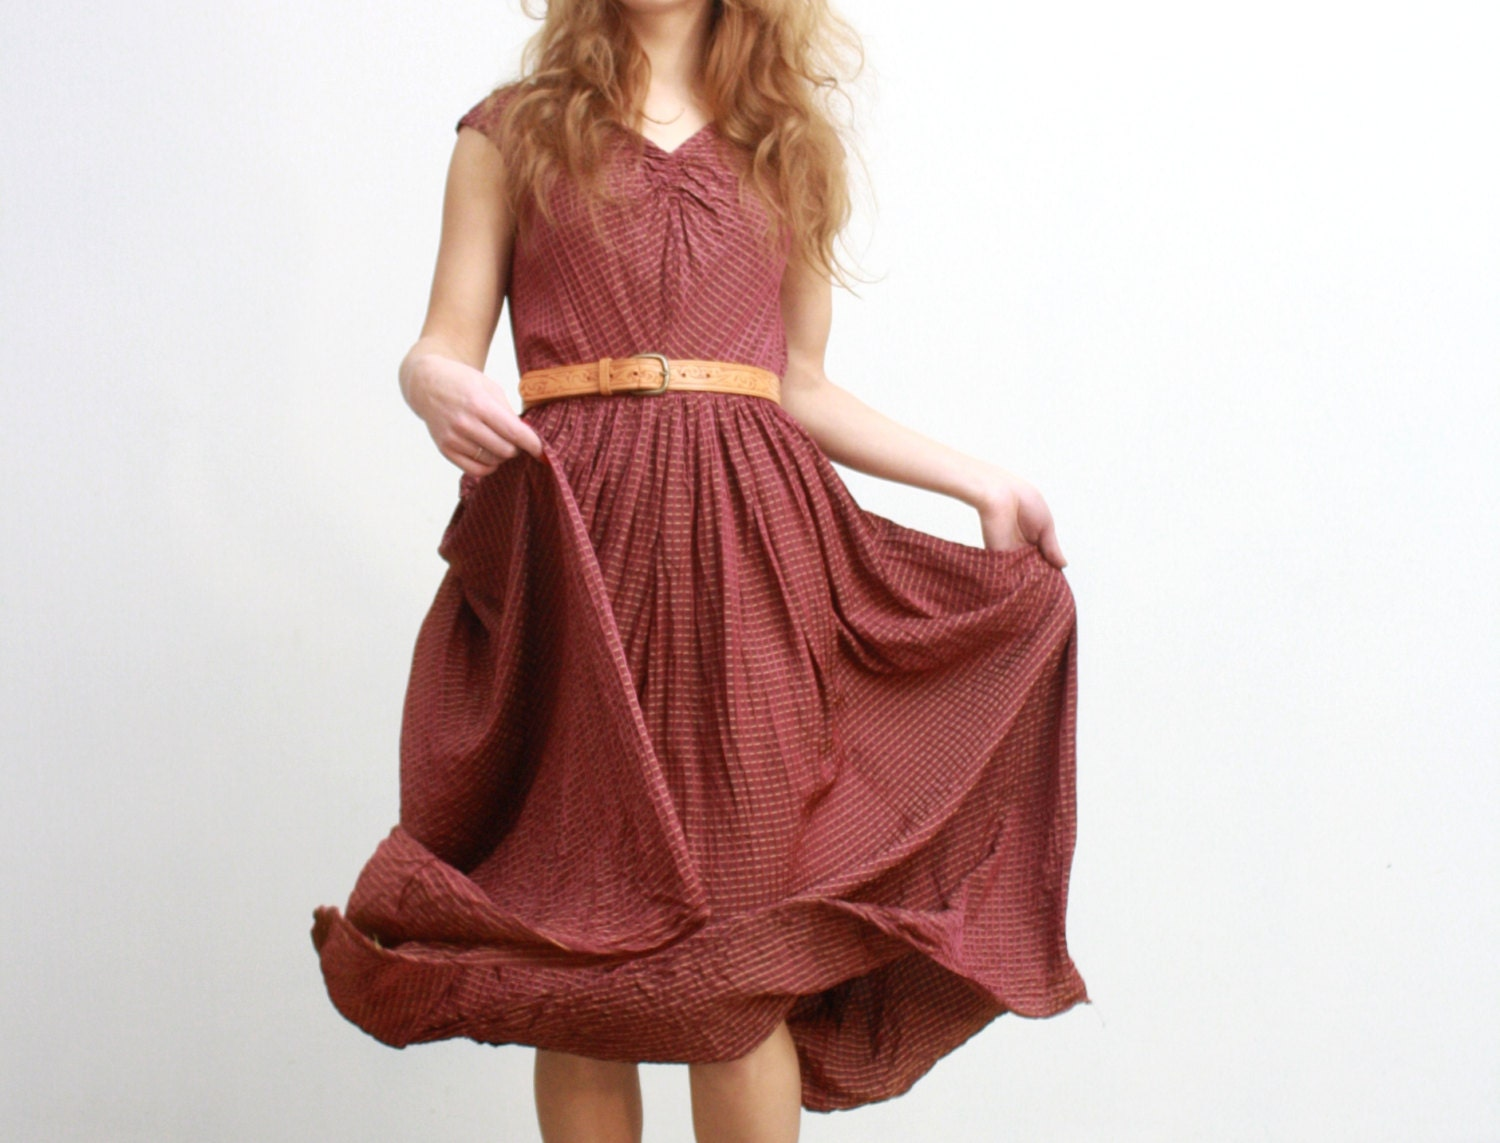 Vtg oxblood maximum bushiness dress from 50's - AbleCrewVintage